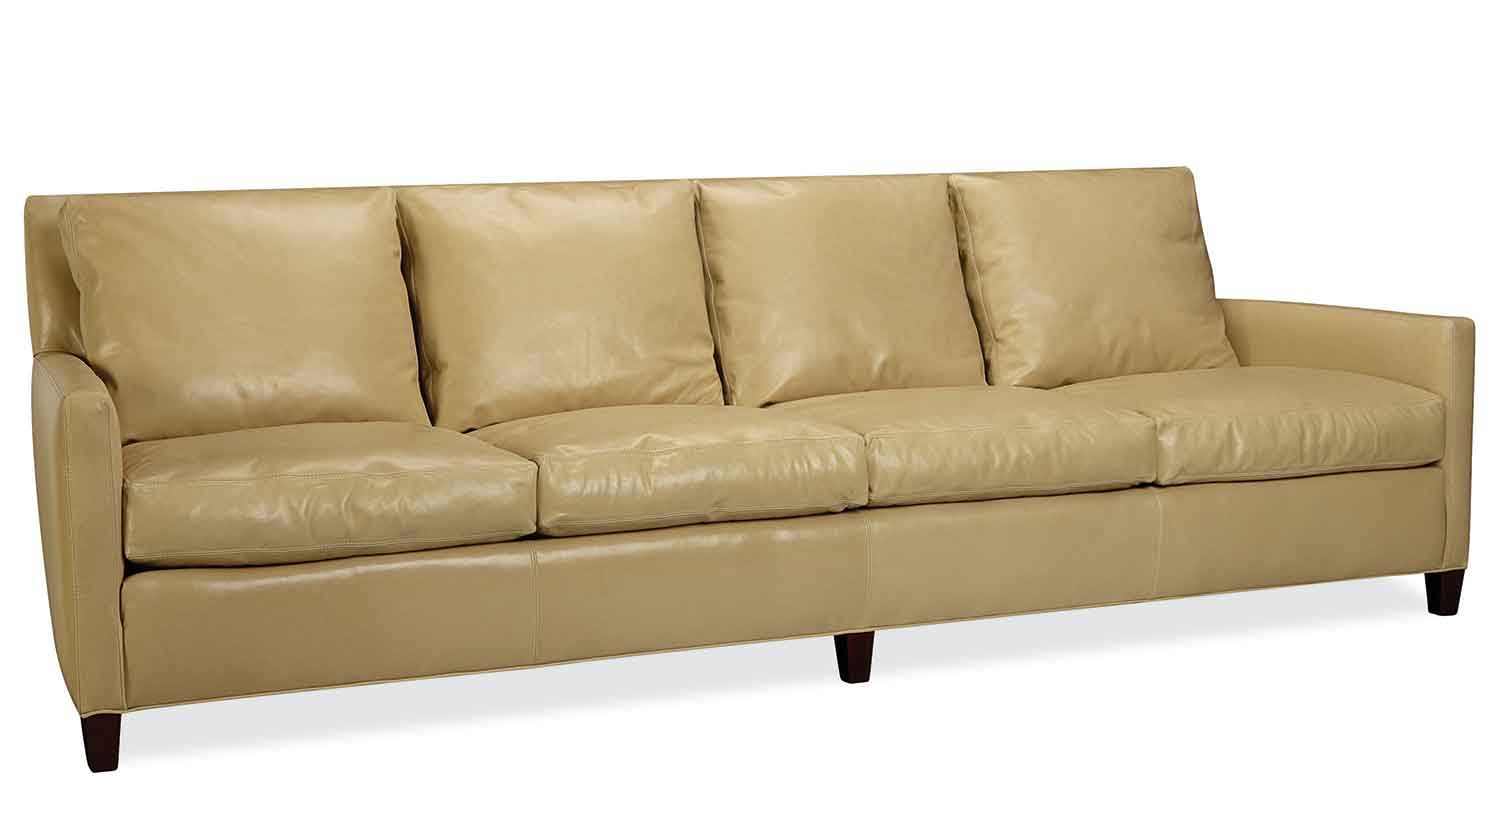 Circle Furniture Maddie 4 Seat Sofa Long Sofas Boston Circle Within Four Seat Sofas (Image 4 of 15)